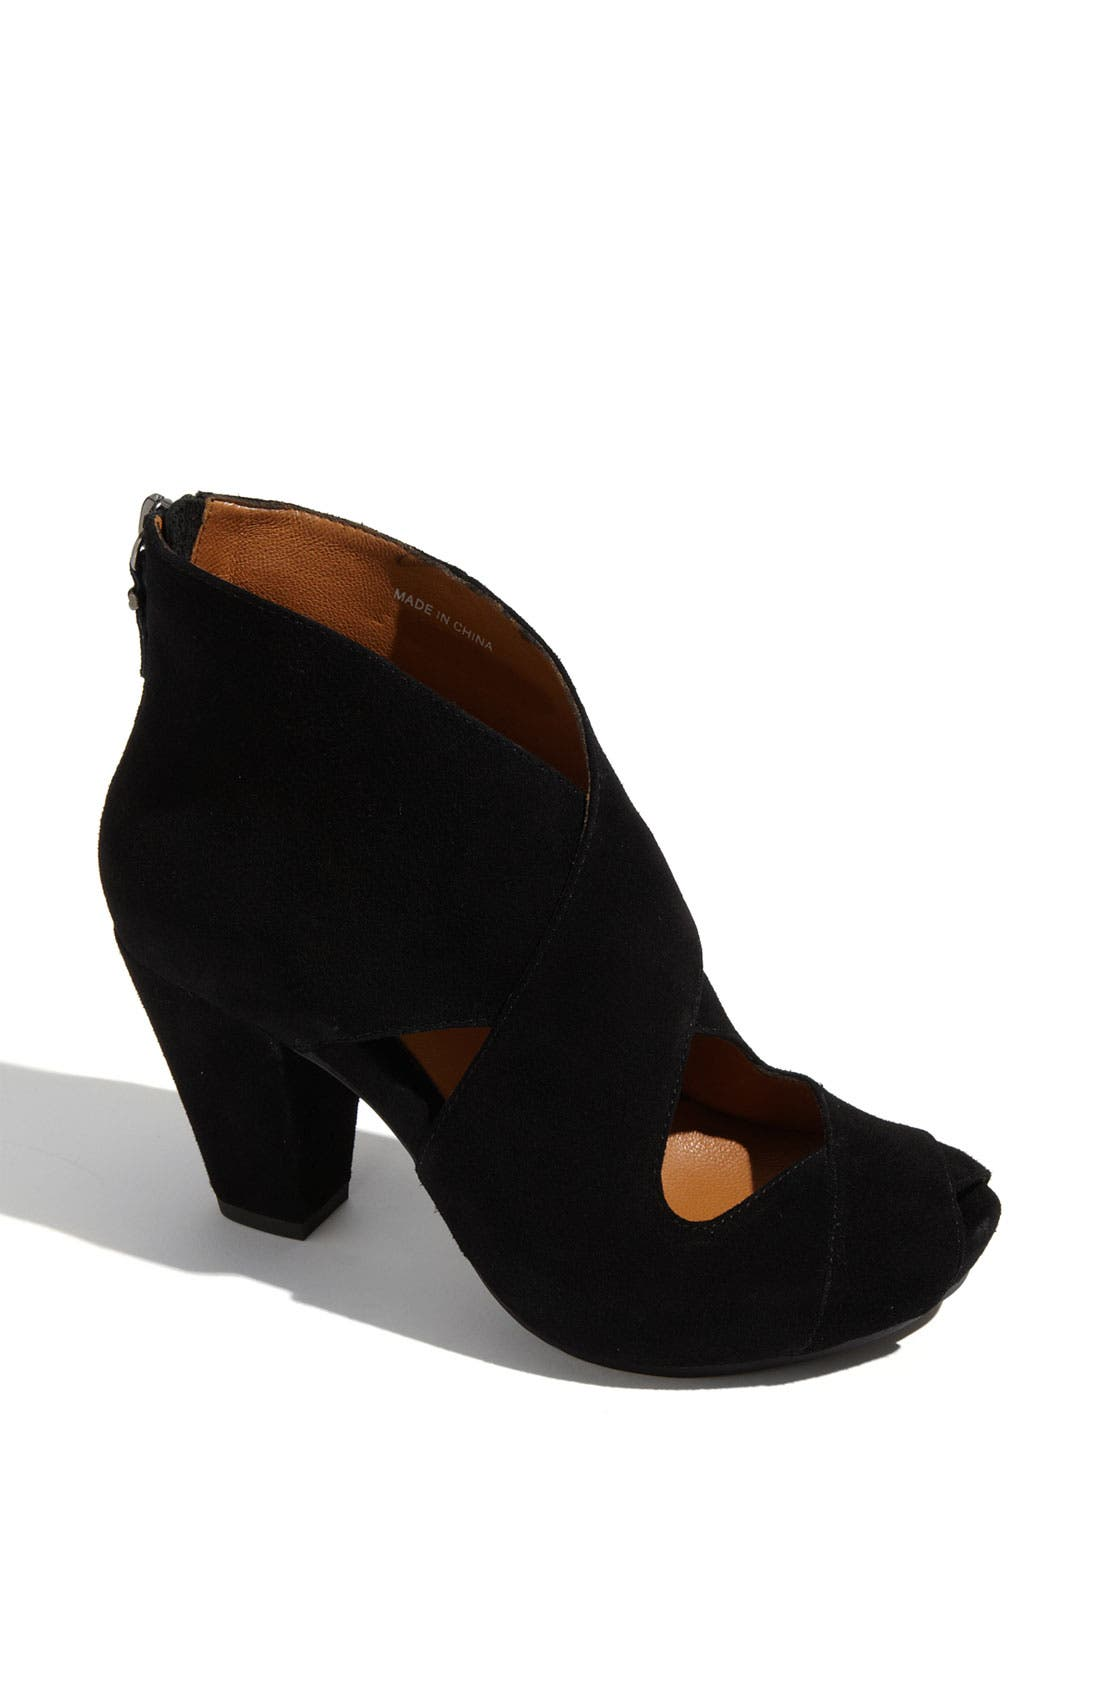 Alternate Image 1 Selected - Earthies® 'Cristiana' Suede Bootie